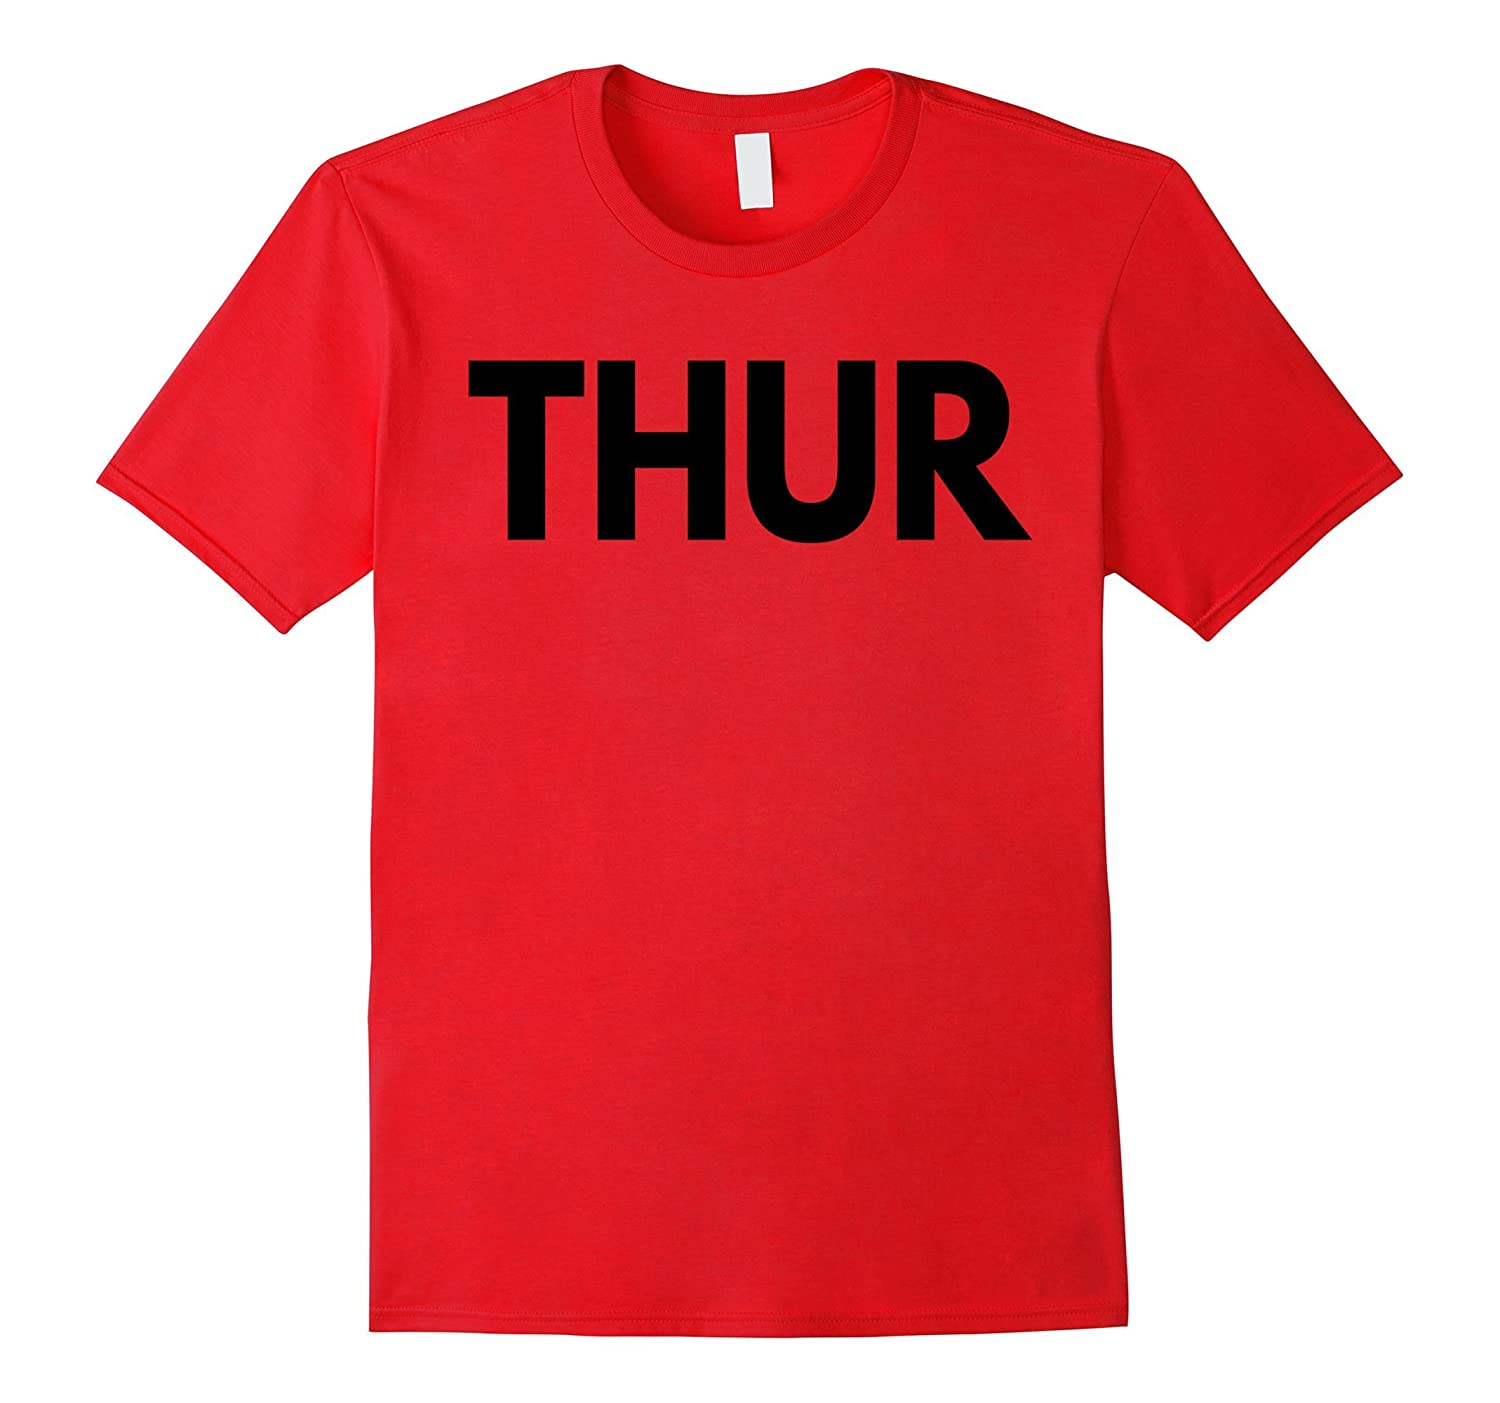 Thursday T-Shirt Days of the Week T-Shirts, Costume, Etc-T-Shirt